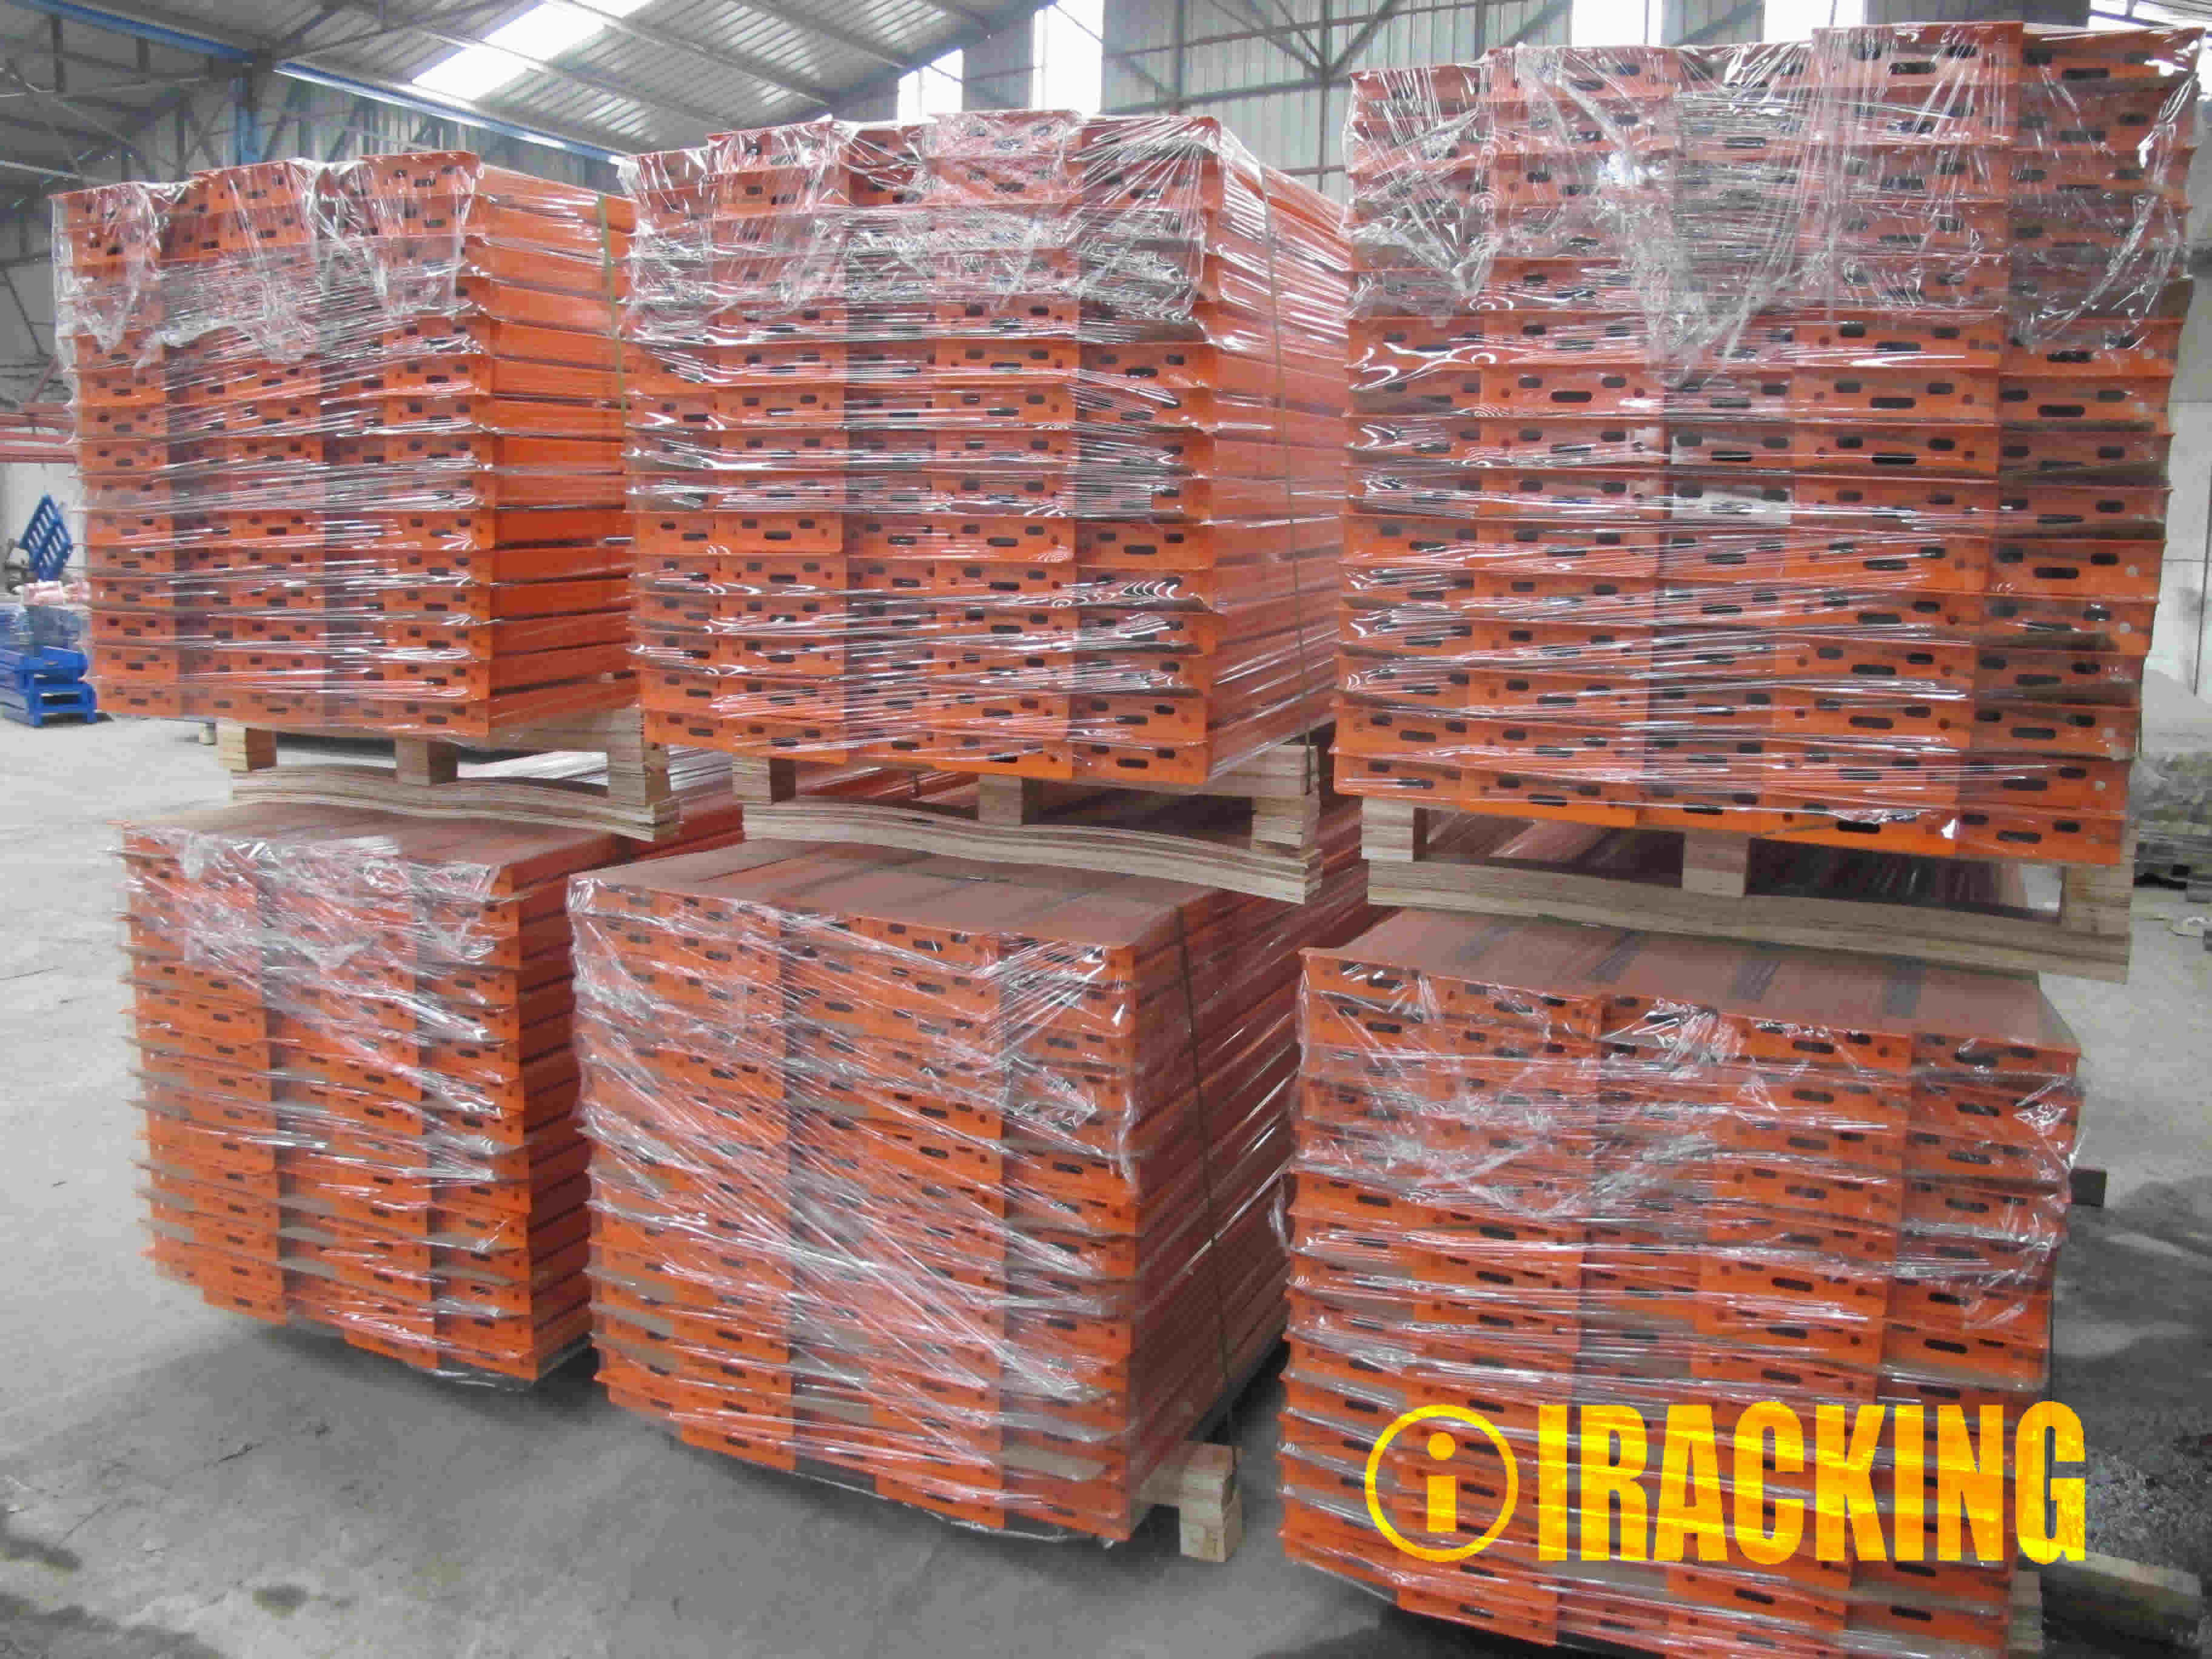 Standard Export Packing for RACKING BEAMS